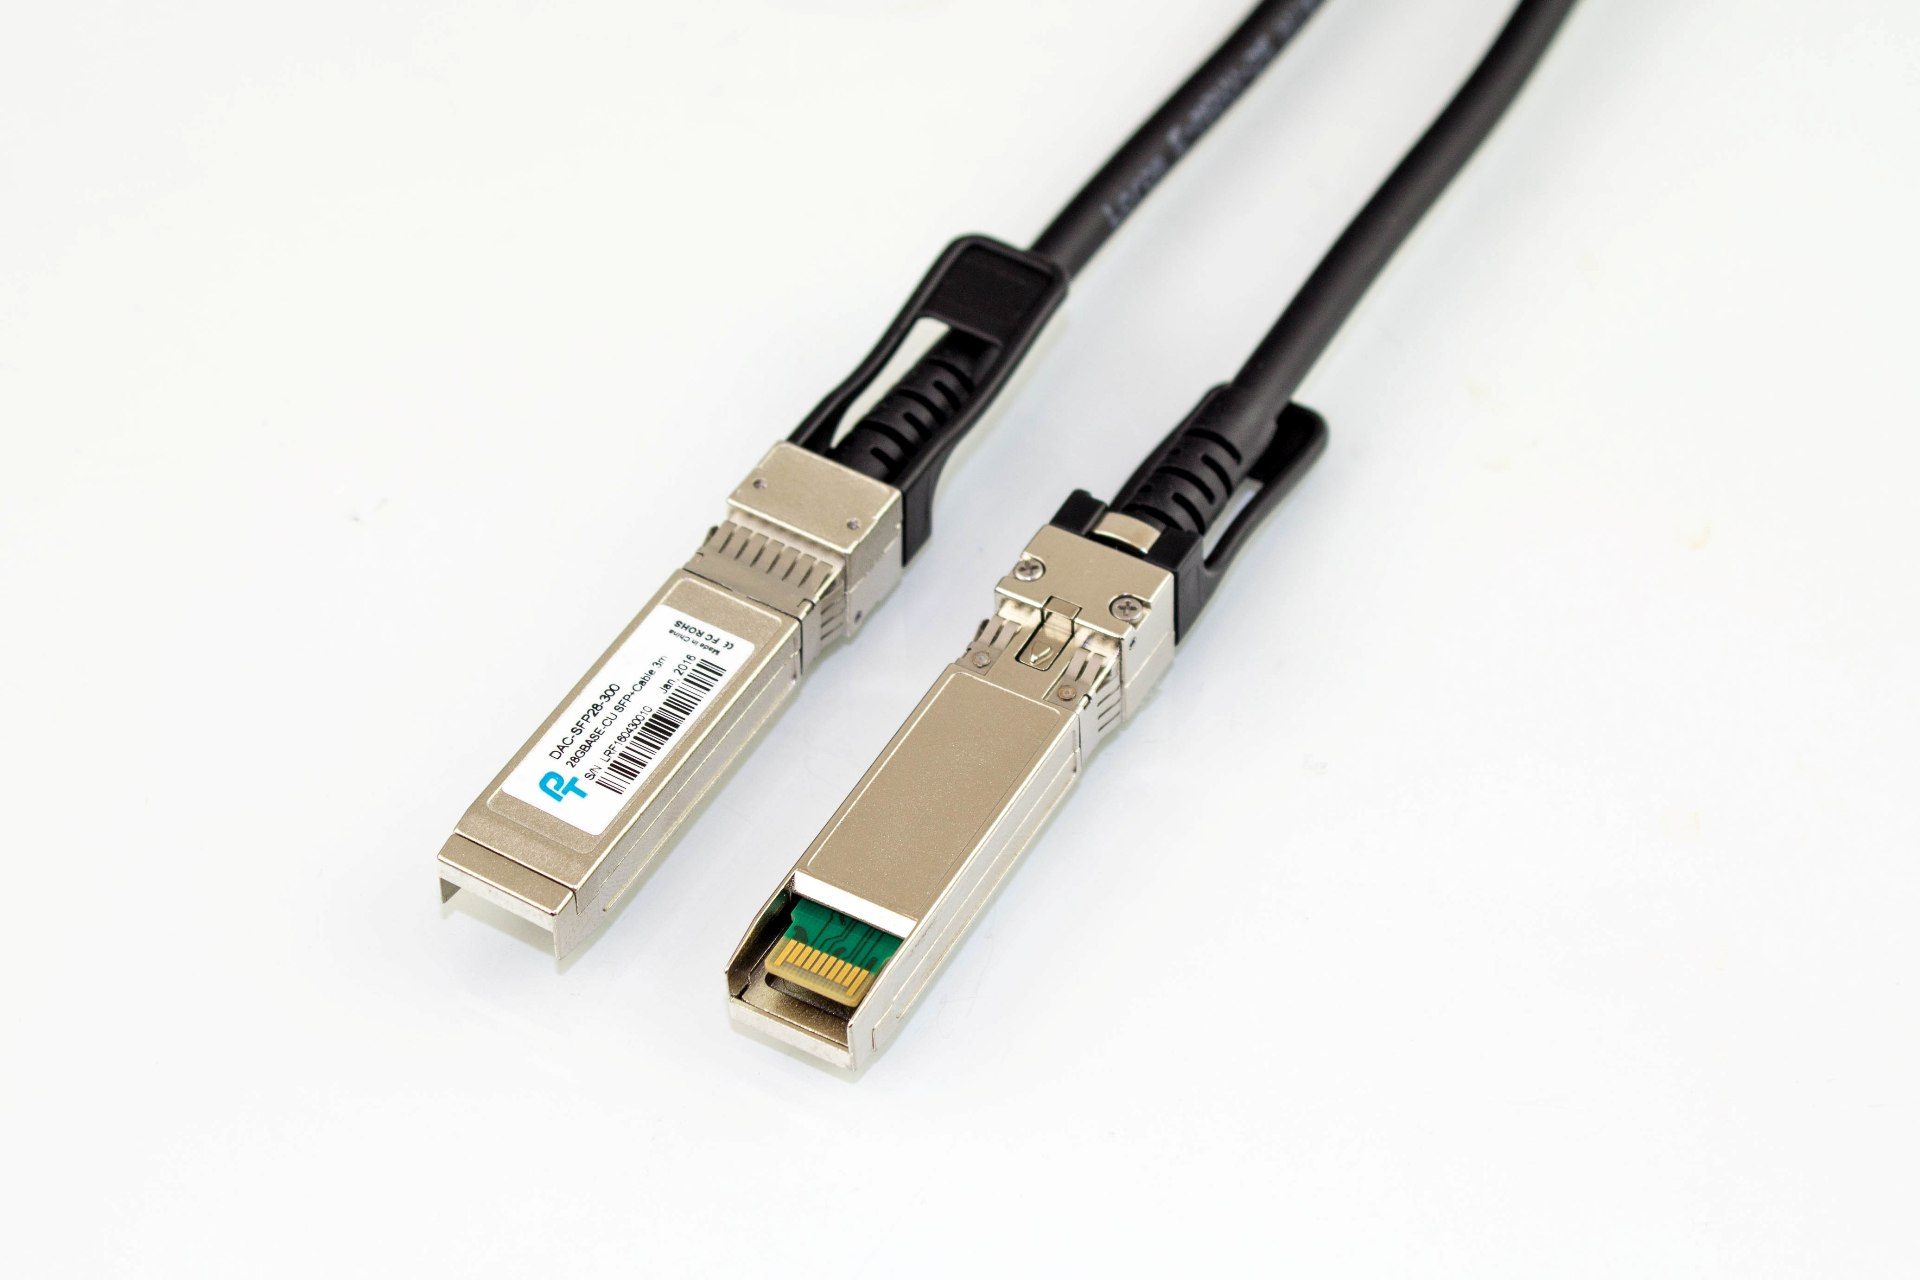 25g Sfp28 Passive Twinax Dac Cable Pactech Cables